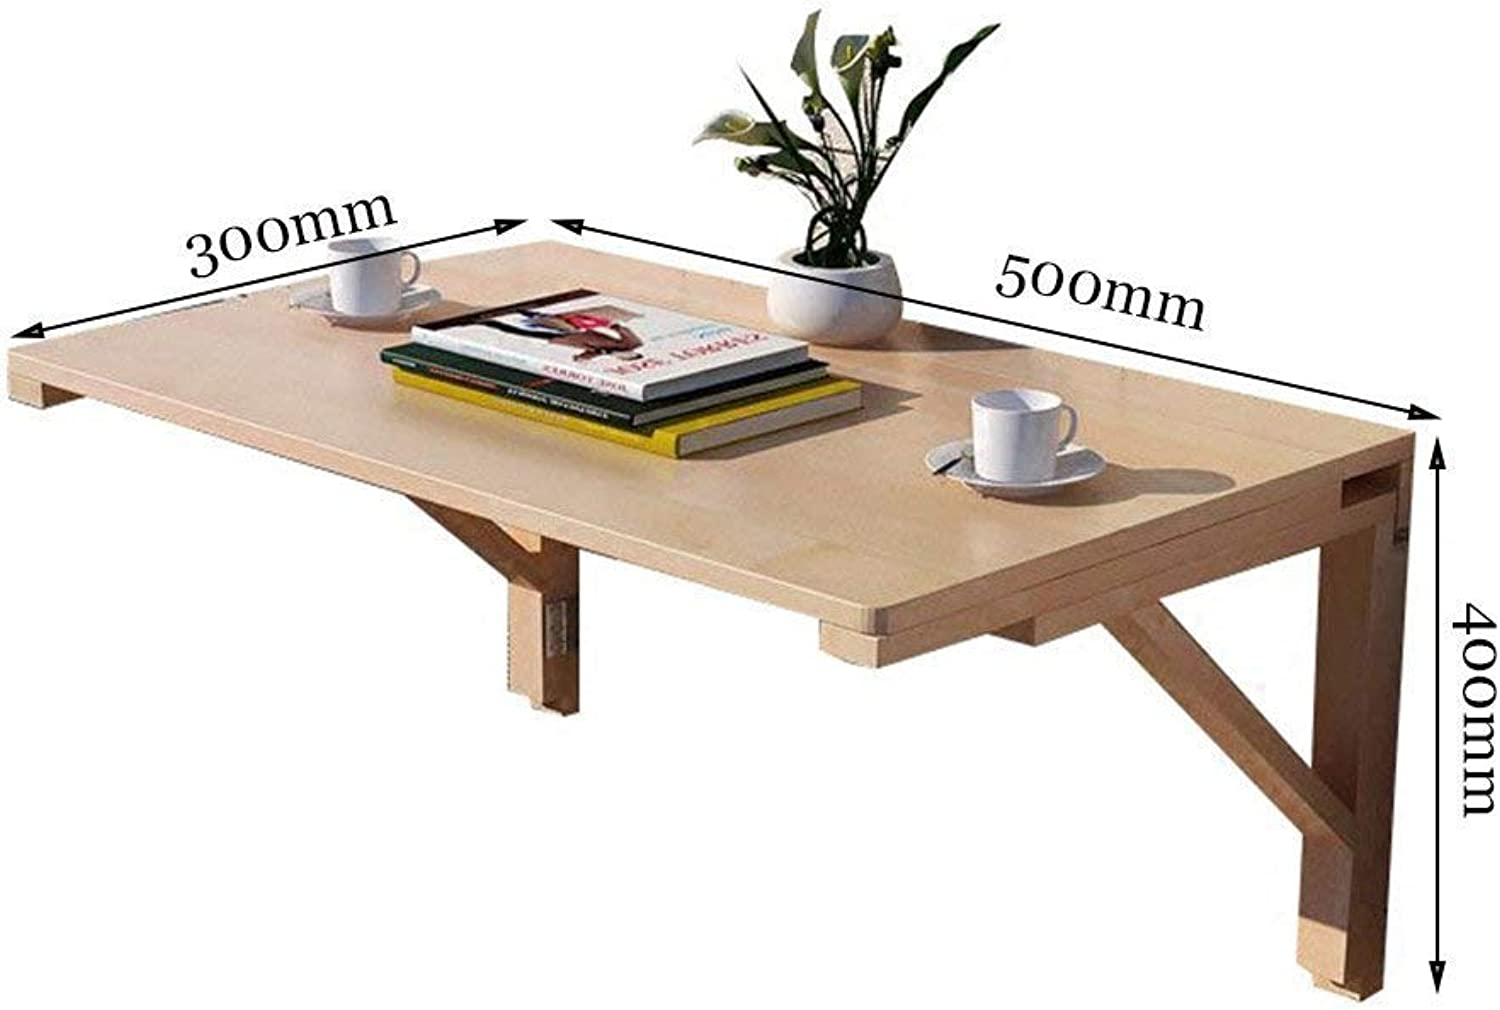 Chuan Han Practical Wooden Wall-Mounted Foldable Table Wall Table Dining Table Wall Computer Desk Adapts to Any Space Study Table Desk Wooden Bracket